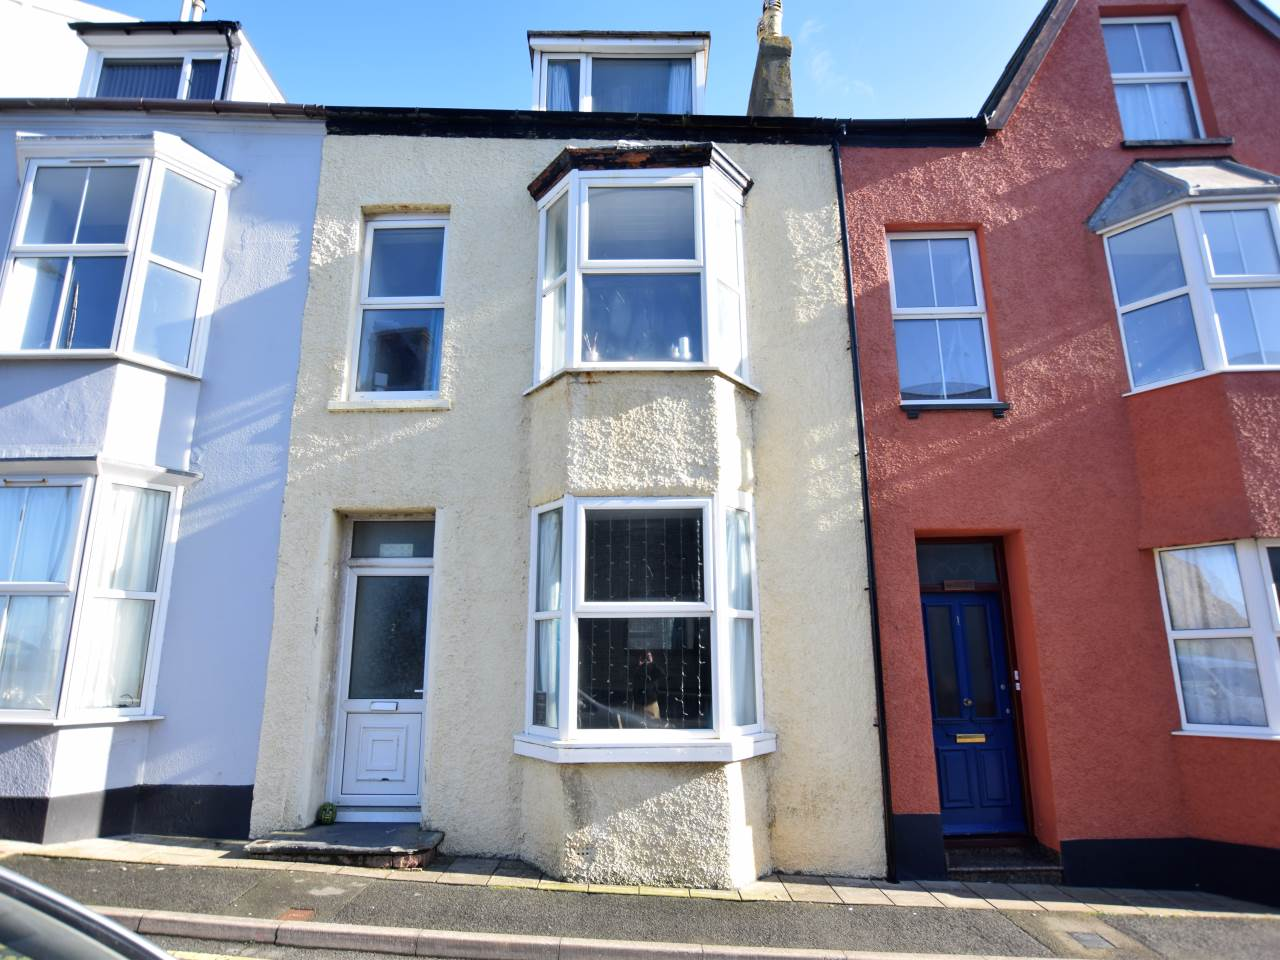 5 bed house to rent in Bryn Y Mor Terrace, Aberystwyth, SY23